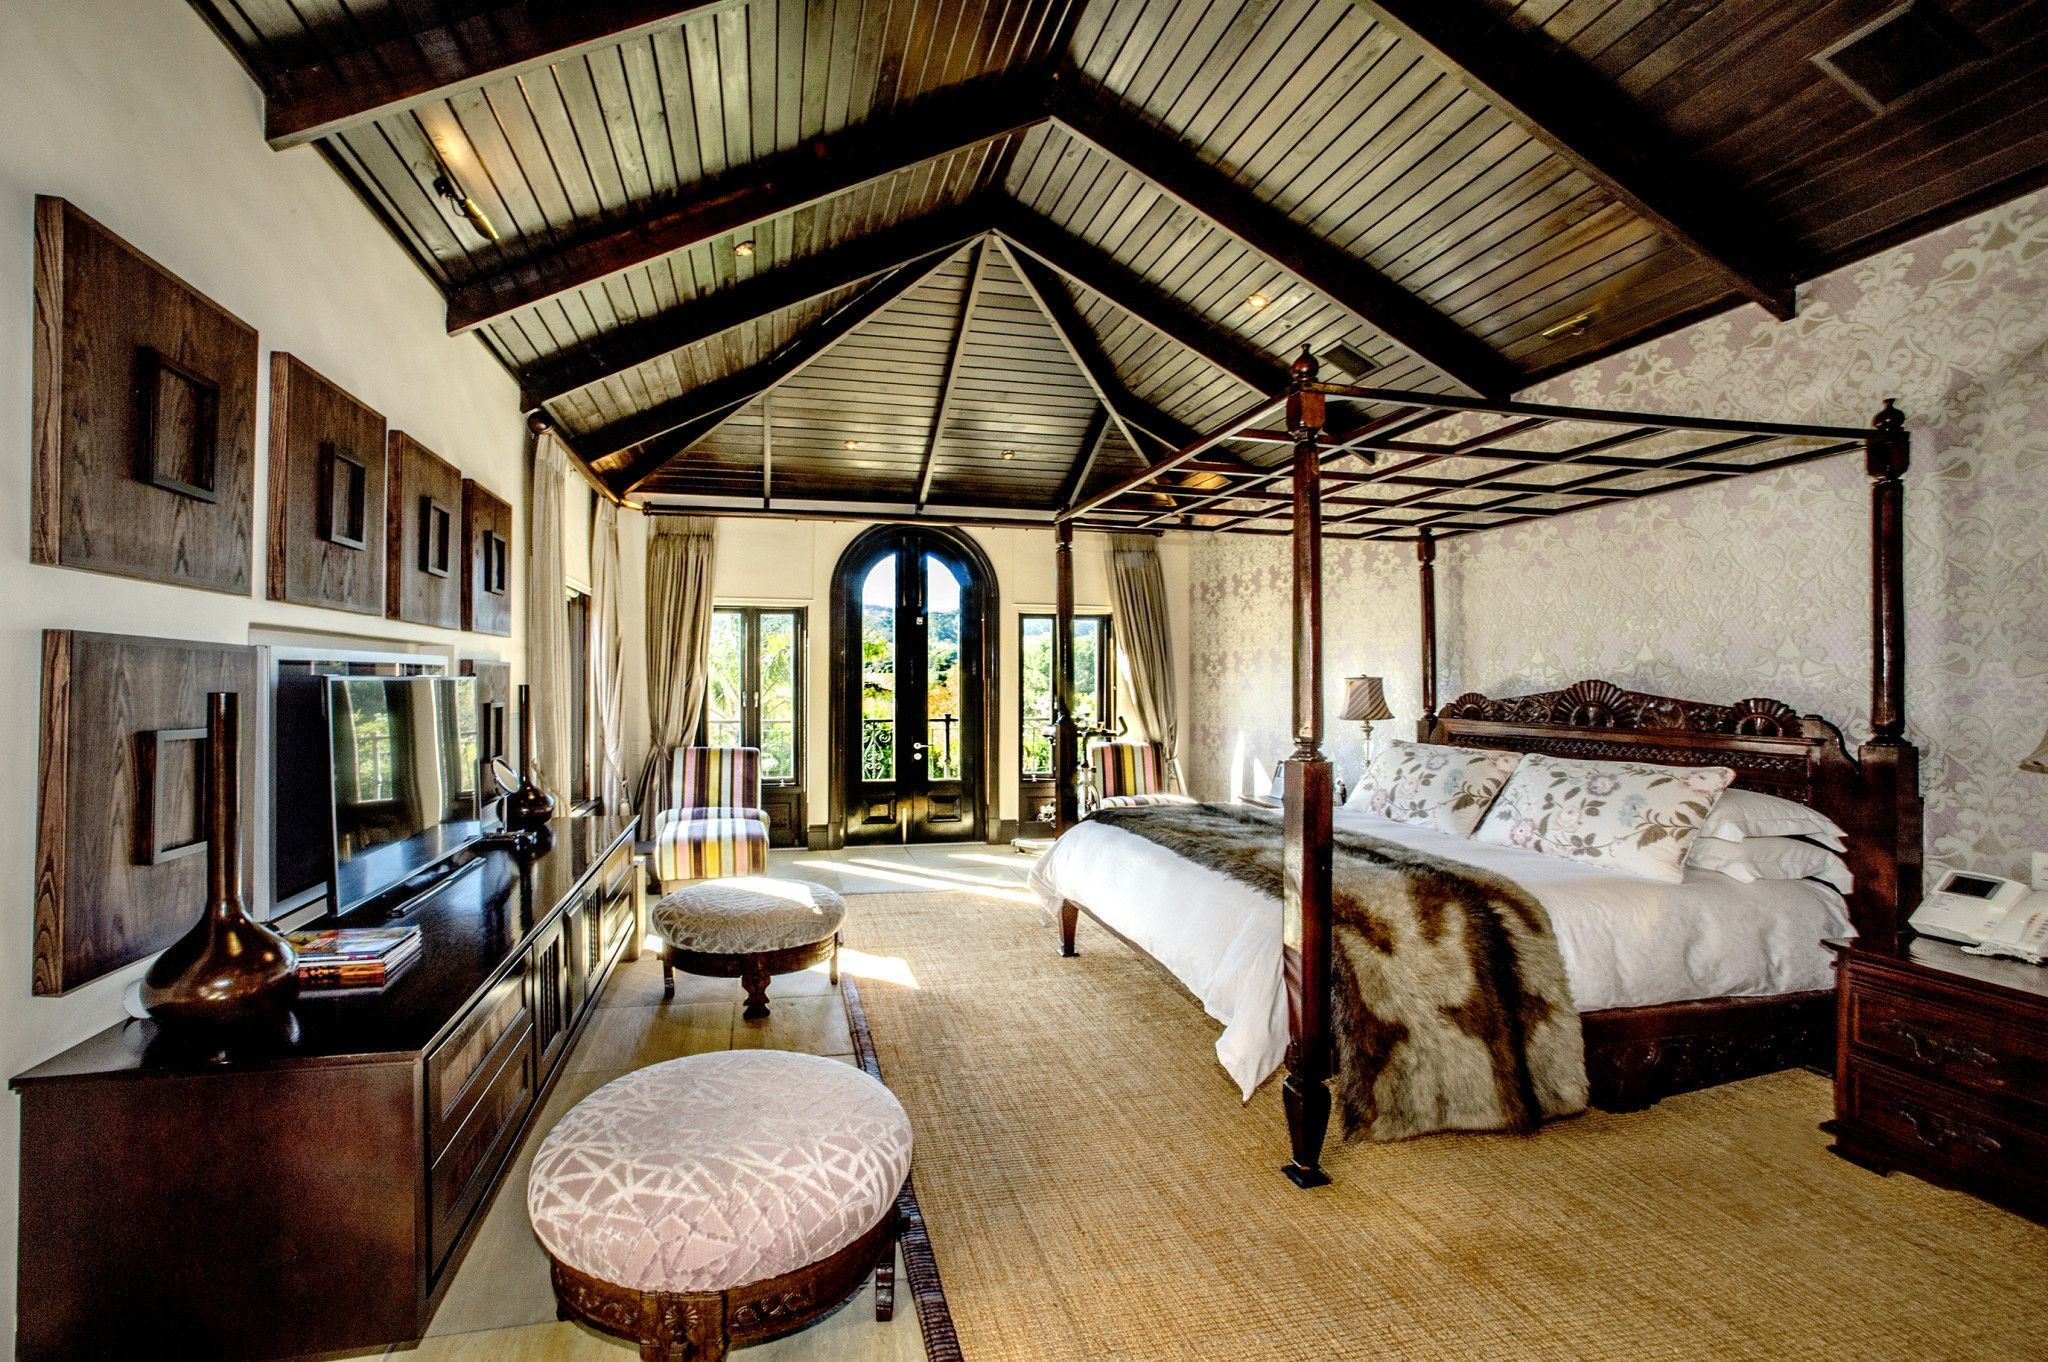 World's best bedrooms with a view